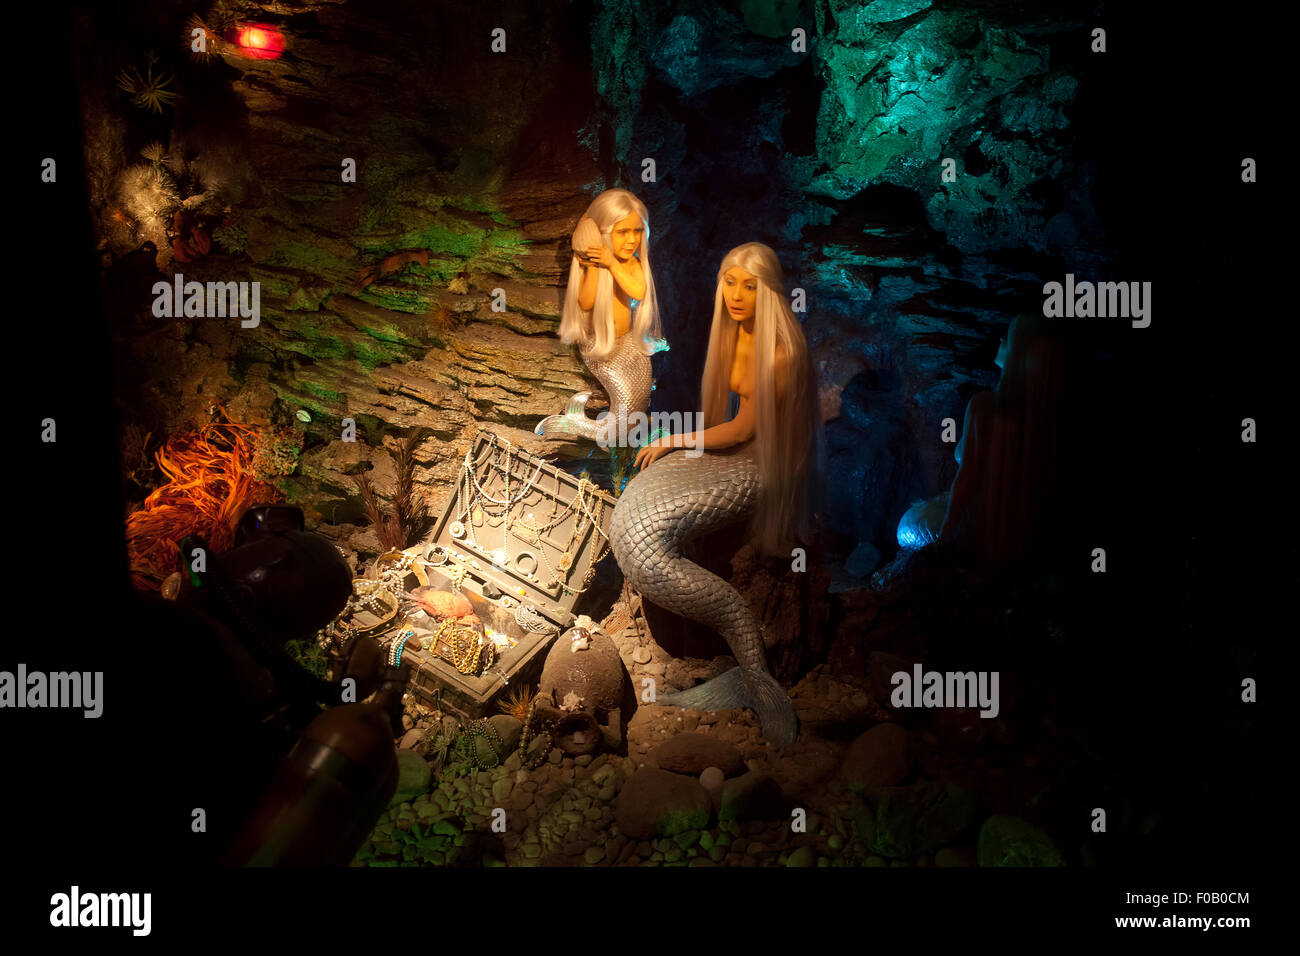 Mermaids or sirens with treasure chest full of jewels at the ocean bottom, Barcelona Wax Museum Museo de Cera, Catalonia, - Stock Image